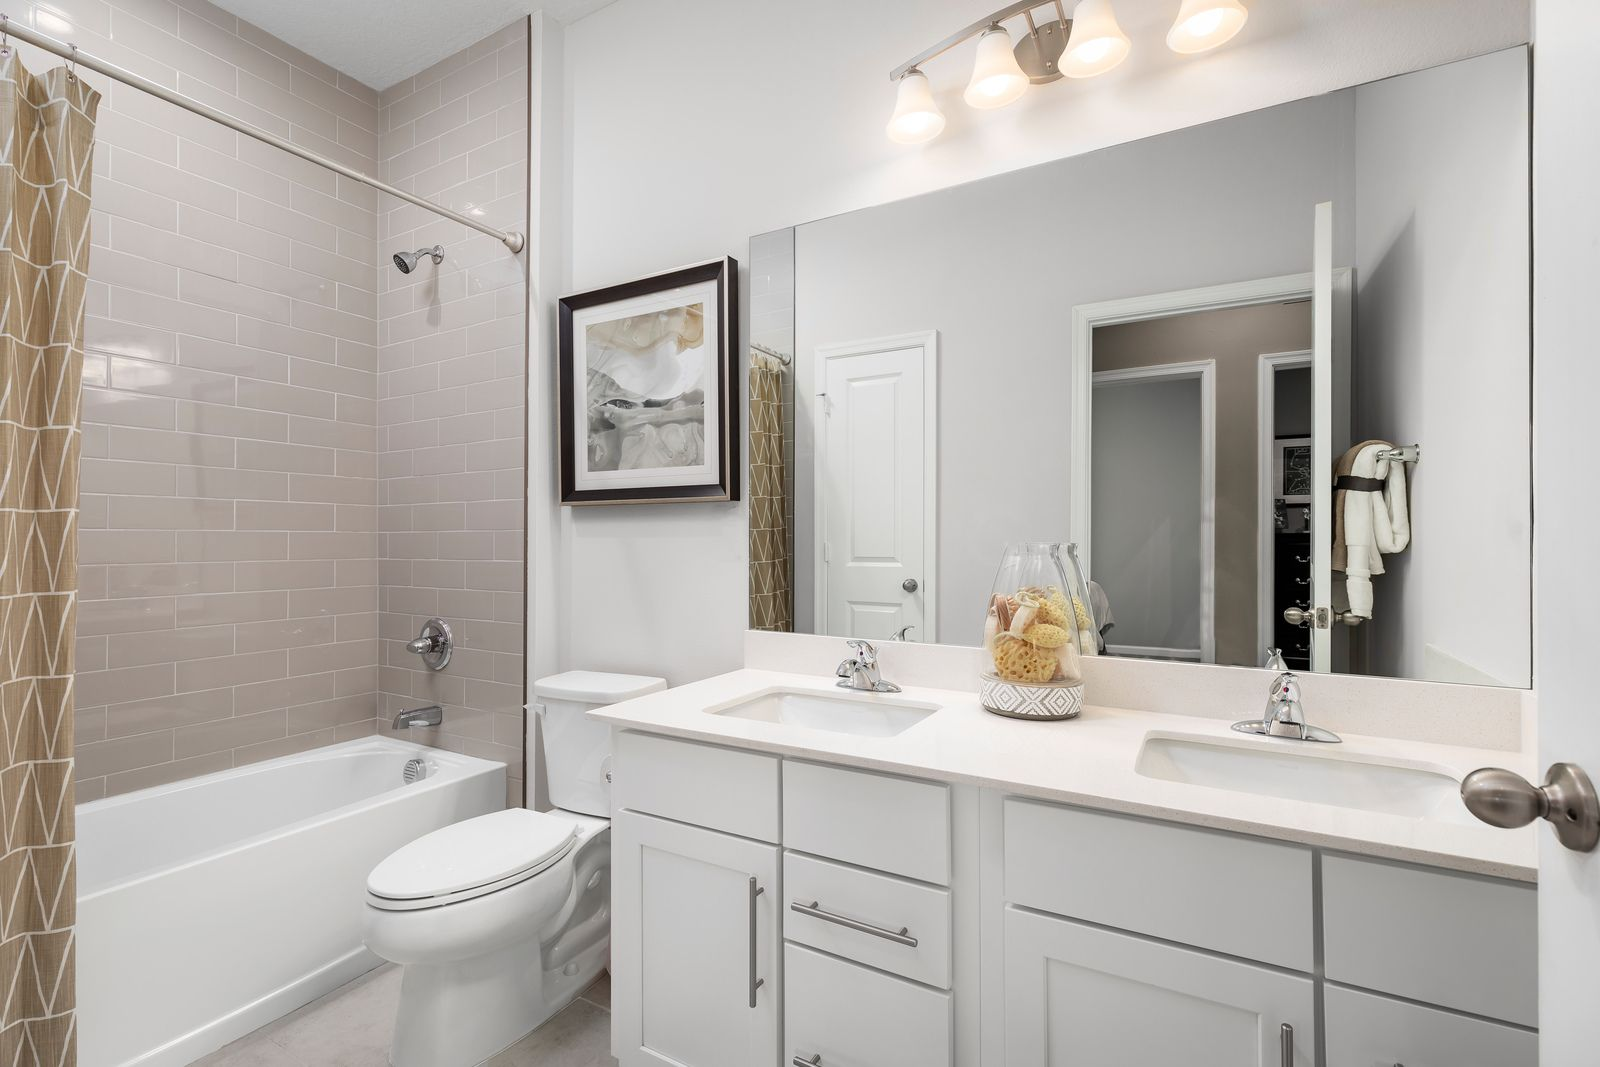 Bathroom featured in the Peterson Cove By Ryan Homes in Indian River County, FL